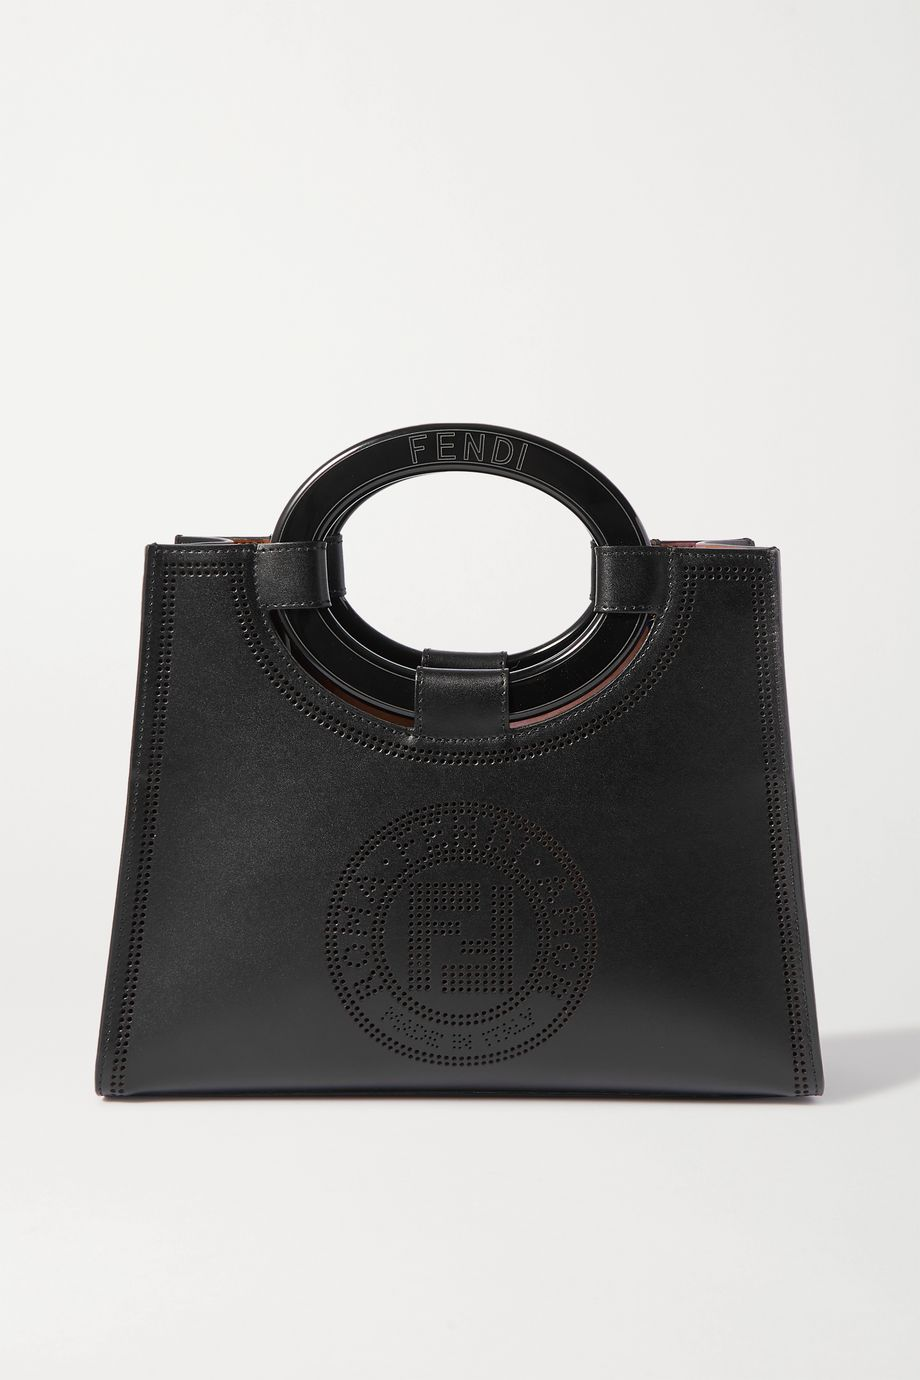 Fendi Small perforated leather tote